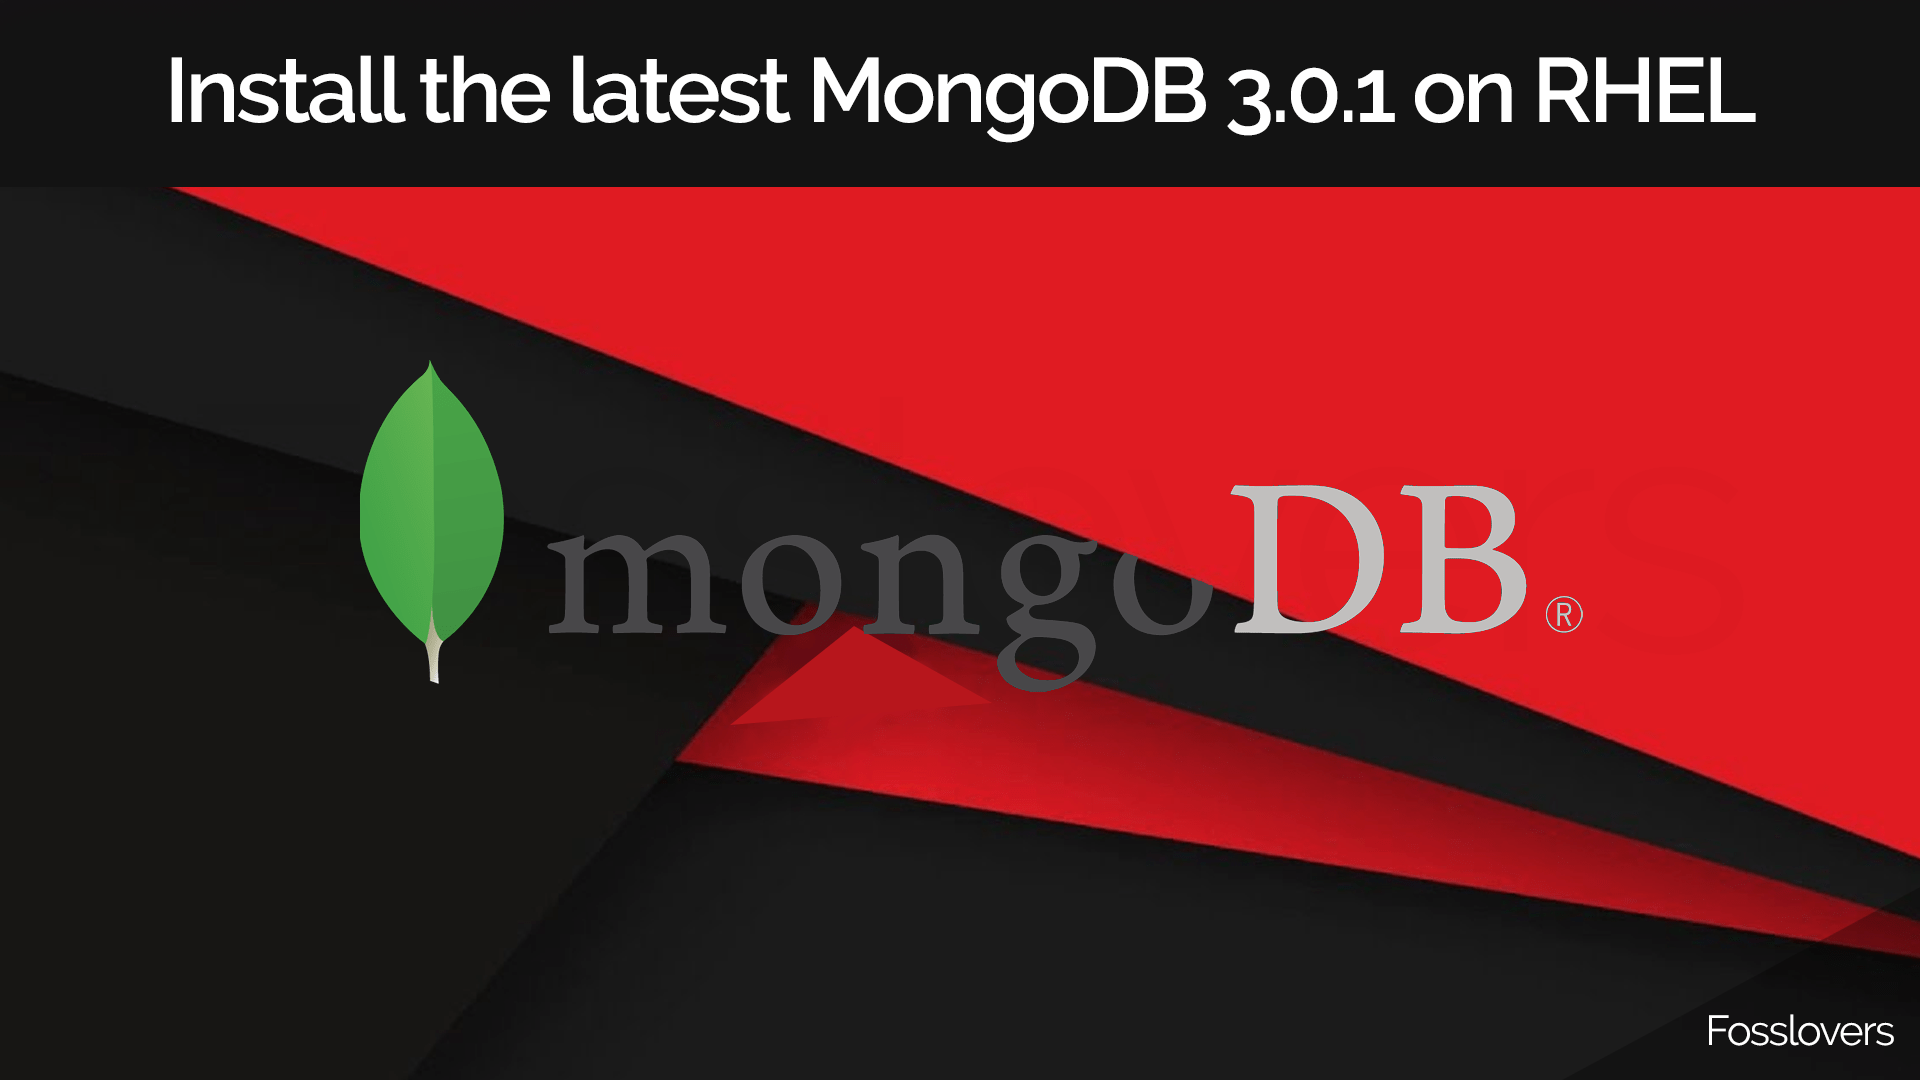 How to install the latest MongoDB 3.0.1 on RHEL or CentOS 7